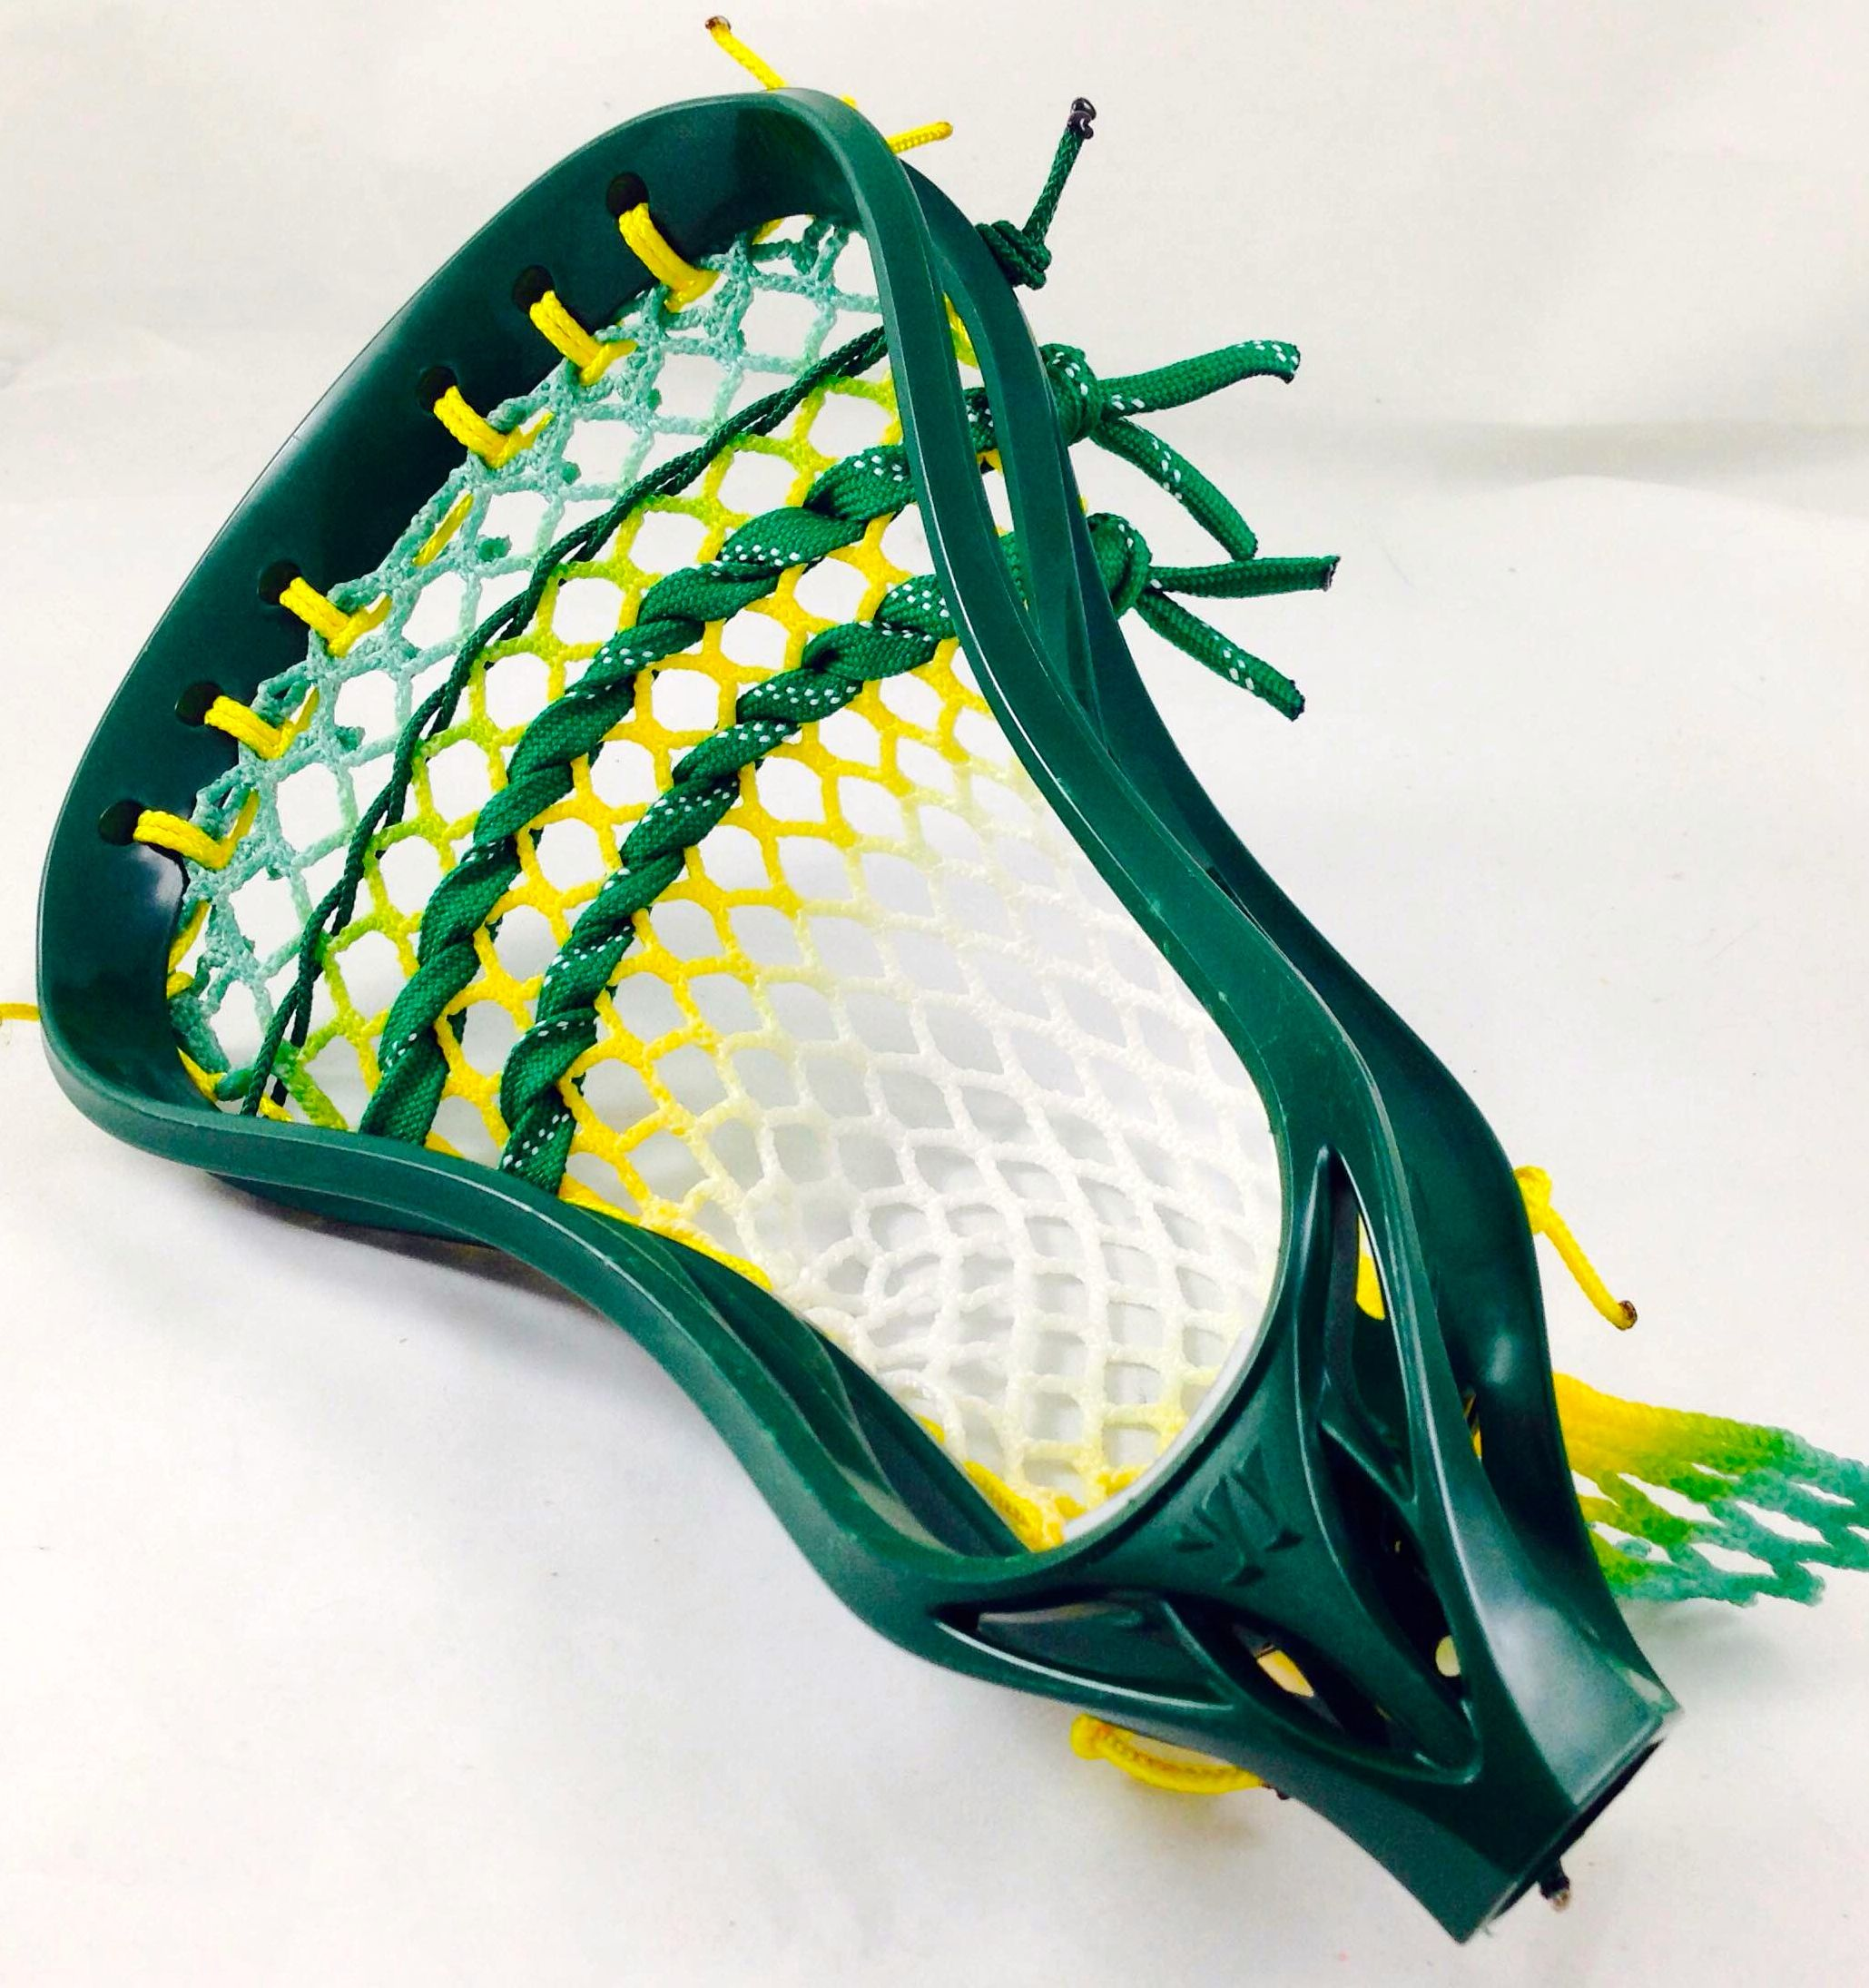 Warrior Evo 4 Hs With 3 Color Jimalax Wax Mesh Mid Pocket With